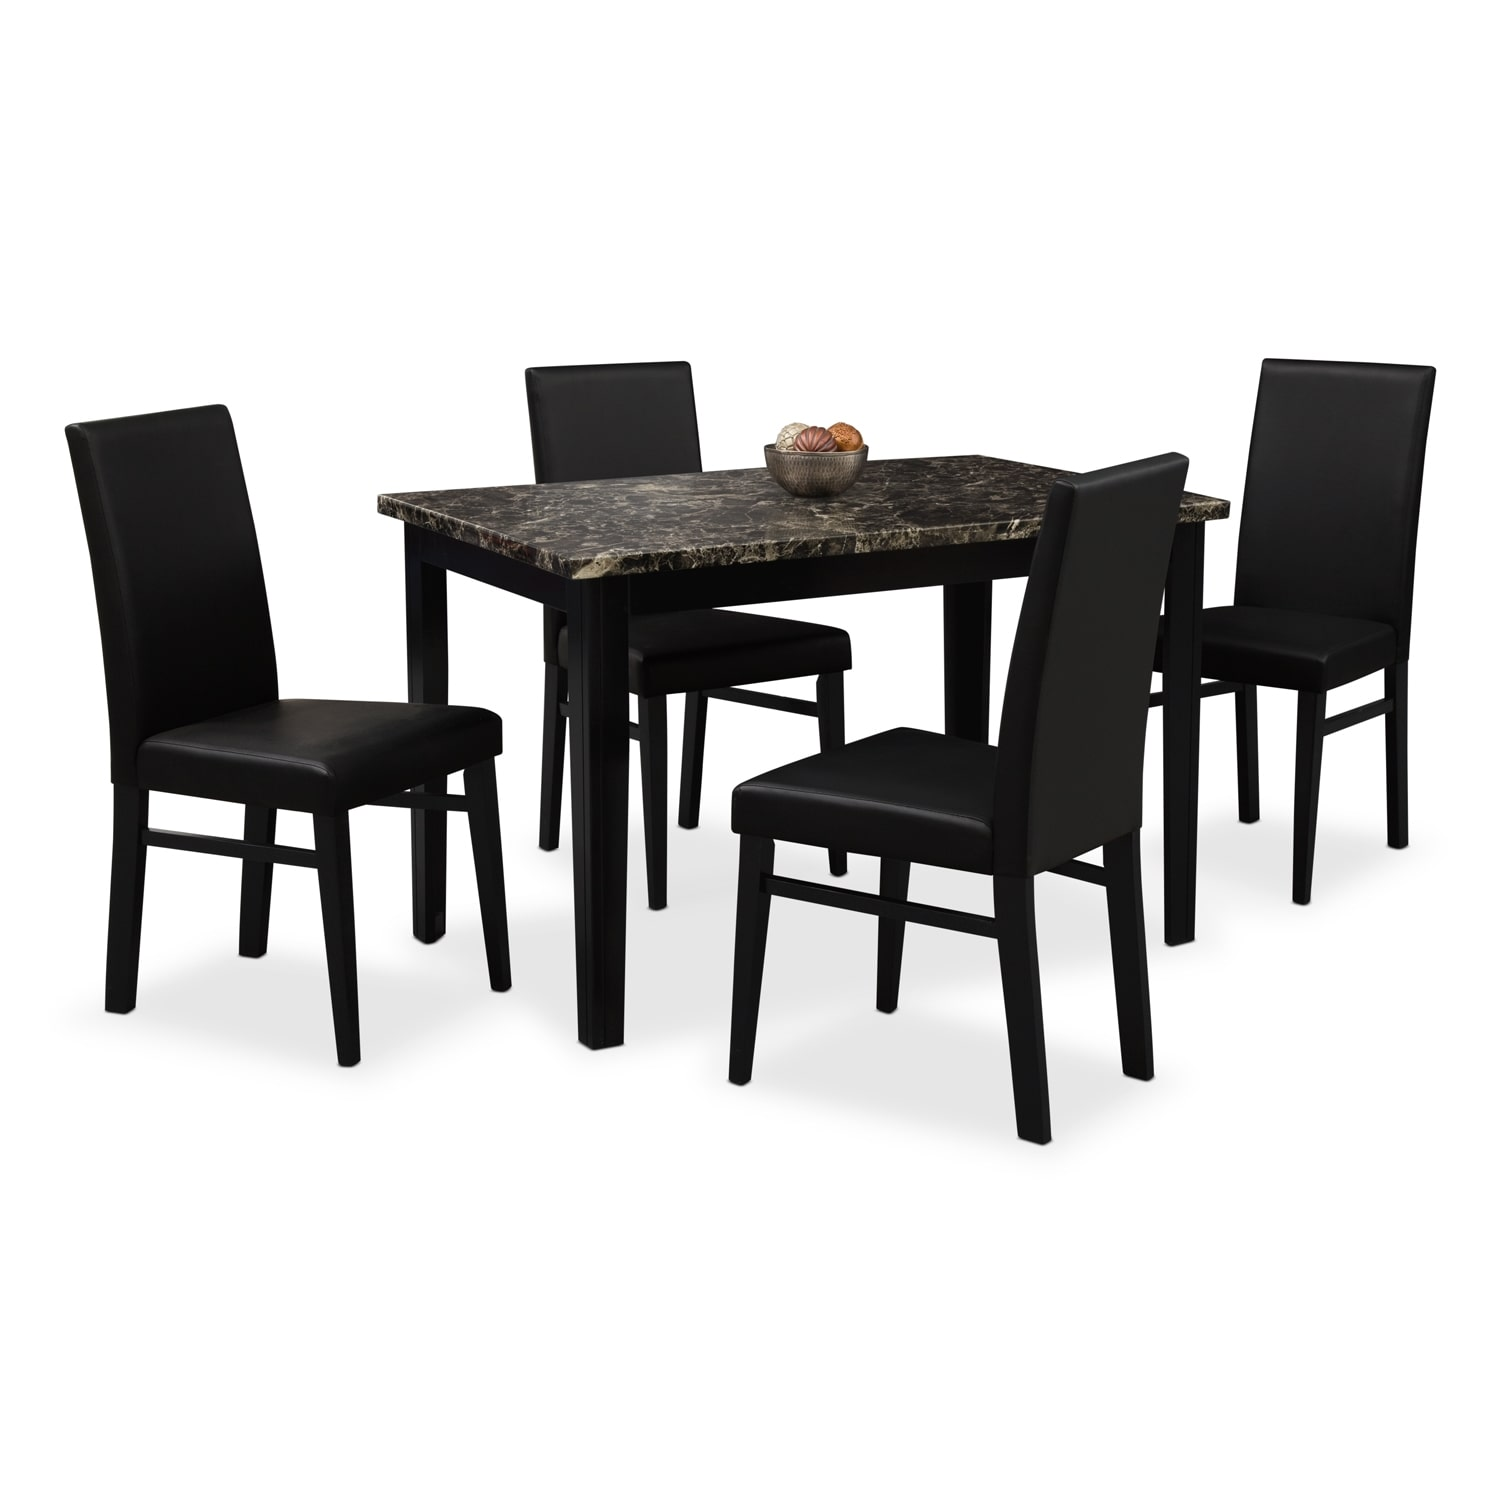 Dining Table Sets Black And White Dining Table 4 Chairs: Shadow Table And 4 Chairs - Black